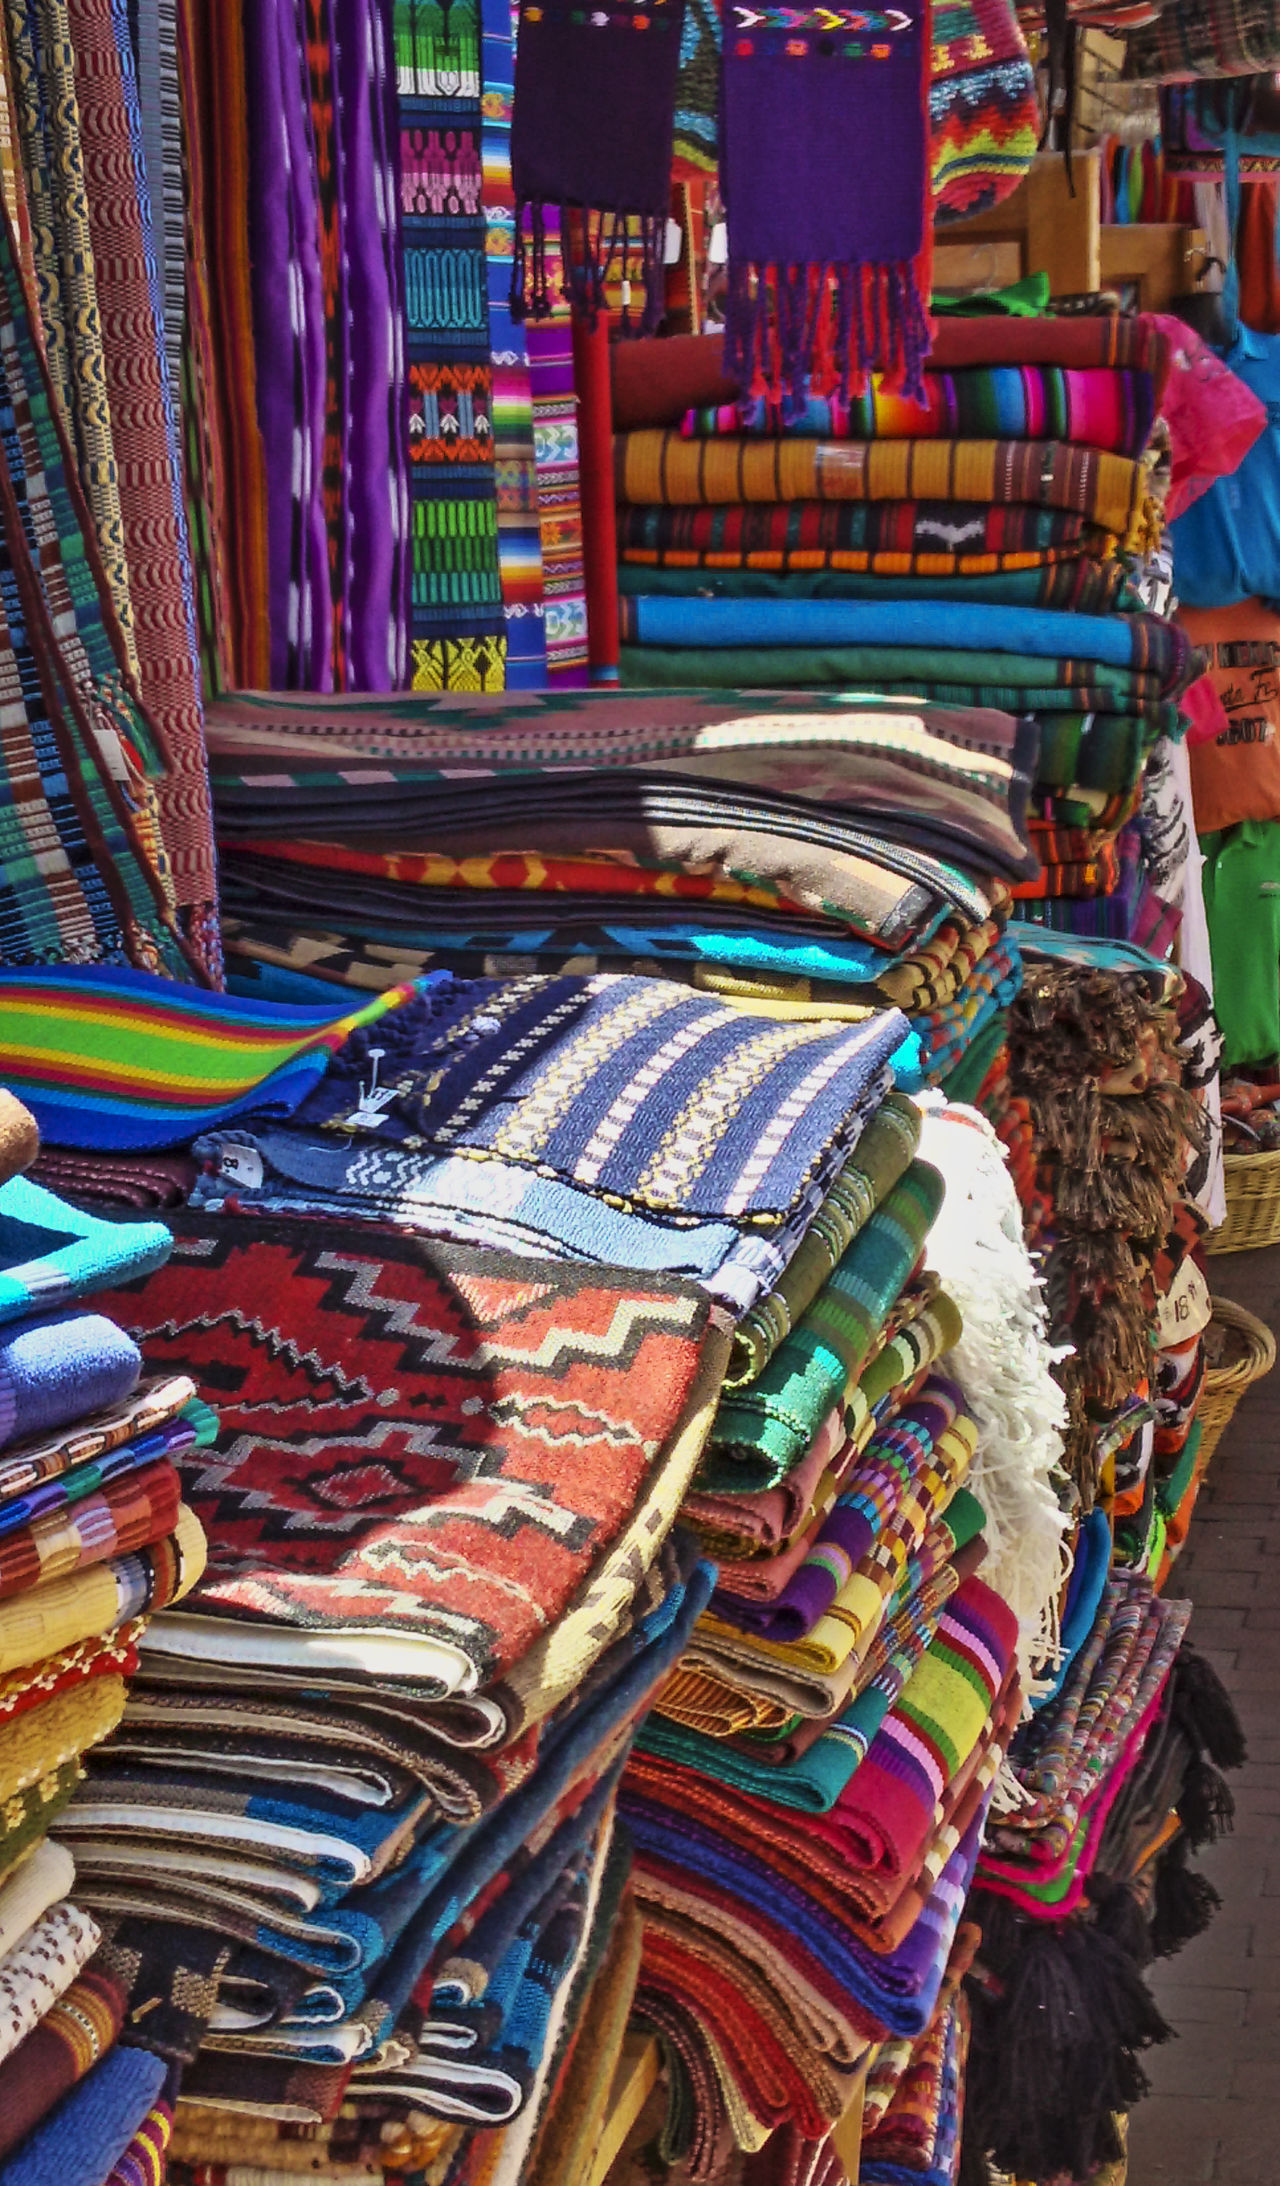 Sante Fe wares. Color and lines. We enjoyed visiting all the shops, and this photo captures the rich and vivid culture. Sante Fe New Mexico Shopping Store Tourism Tourist Sight Seeing Traveling Travel Mexico Pueblo Shop Keeper Blankets Beautiful Colorful Rich Colors Popular Culture Shopping ♡ Vendor Street Market Fabric Fashion Texture Lines